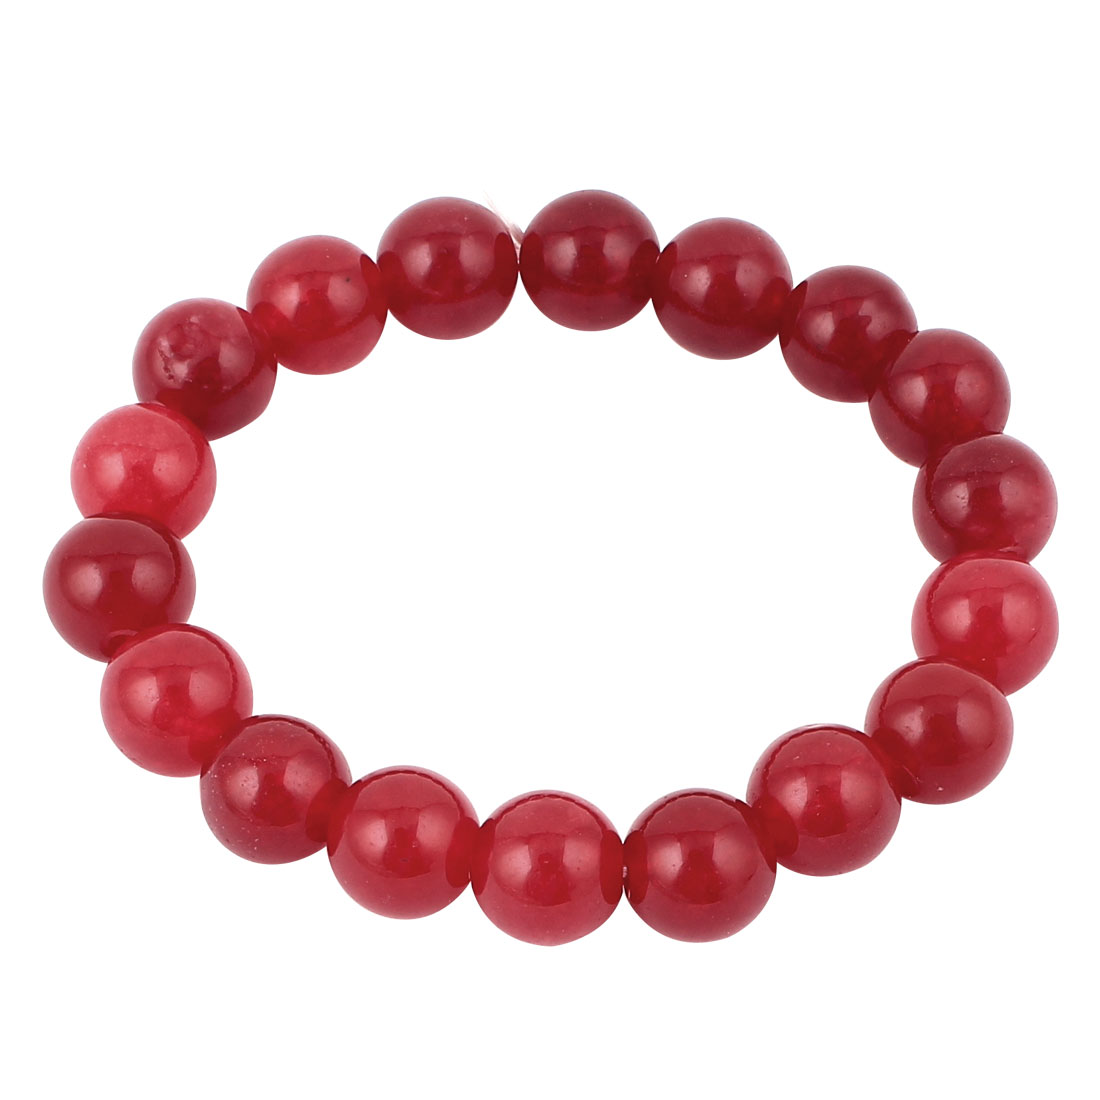 Elasticated 10mm Beaded Stretch Bracelet Jewellery Wrist Ornament Red